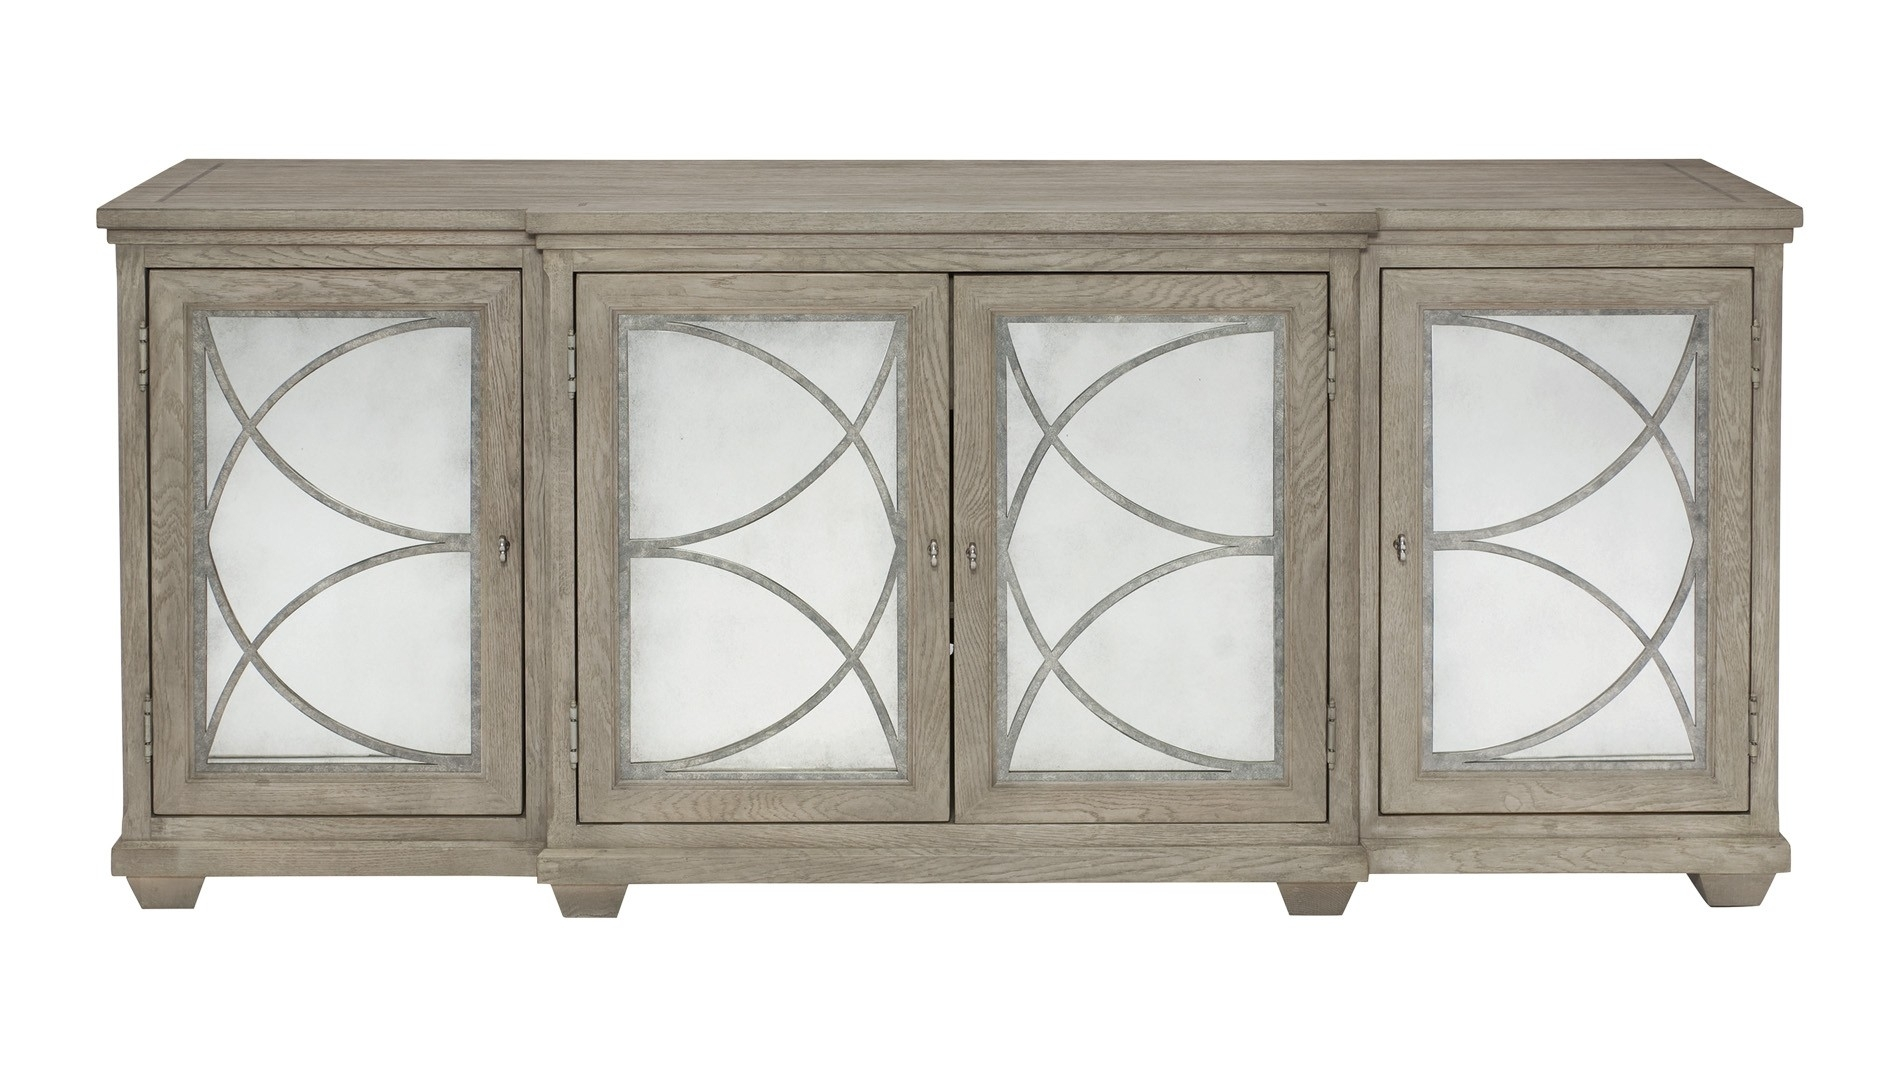 Bernhardt, Marquesa Sideboard - Antique Mirror, Buy Online At Luxdeco inside 2-Door Mirror Front Sideboards (Image 5 of 30)